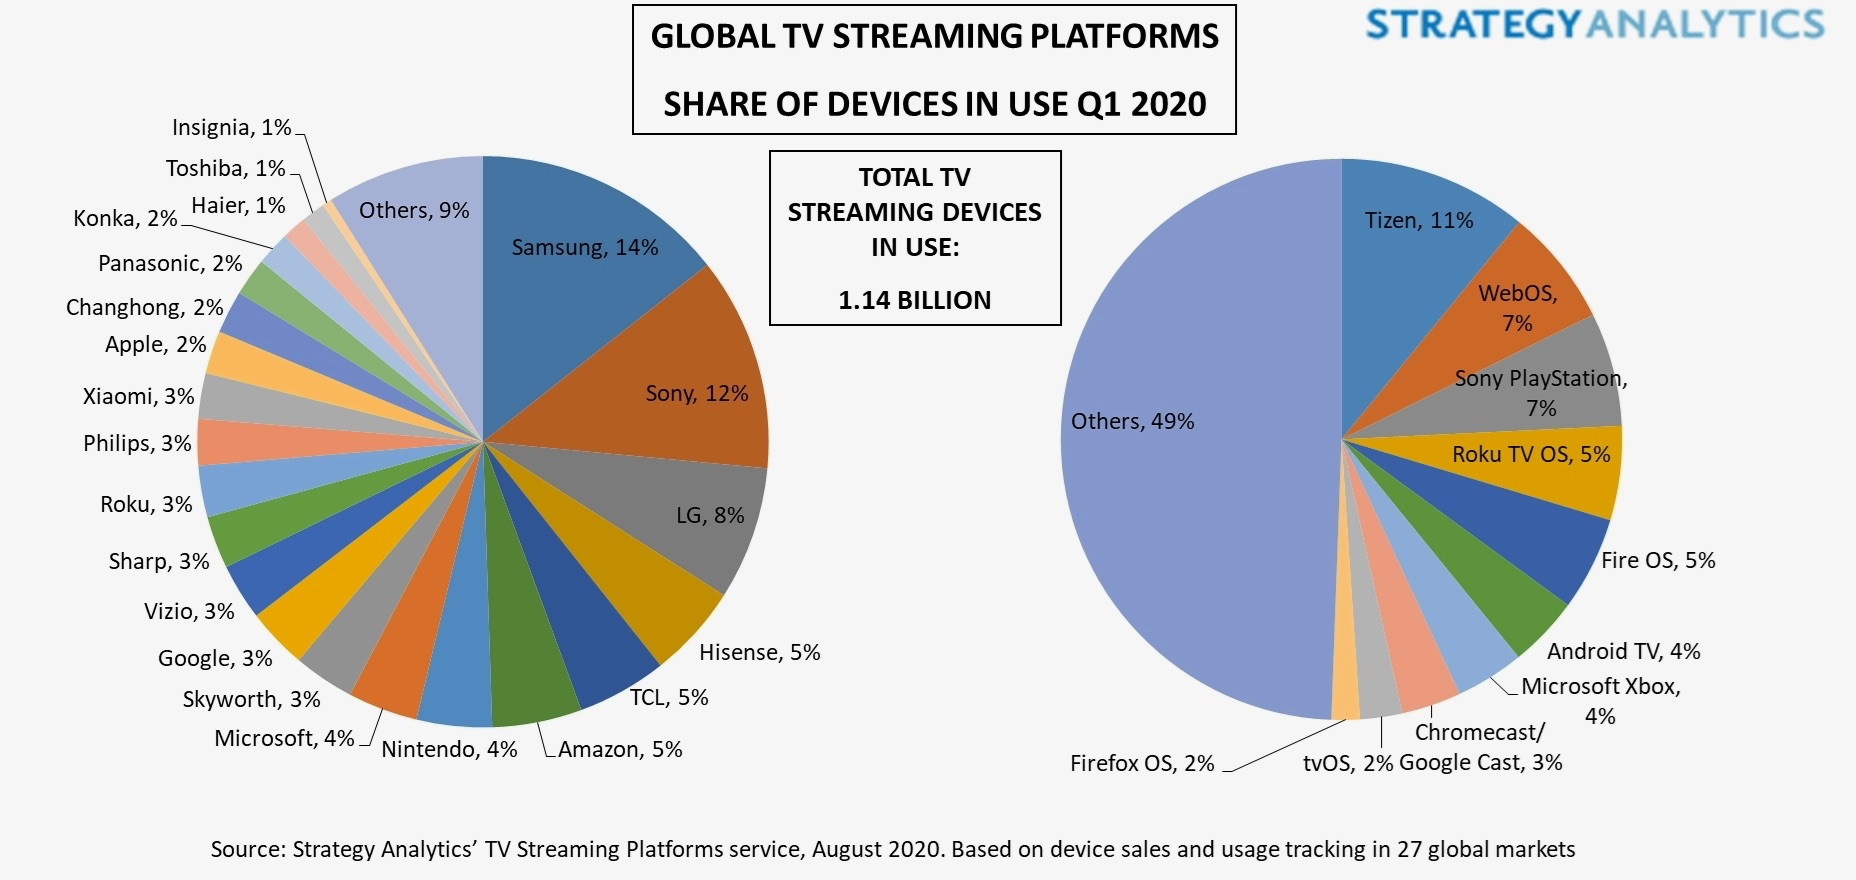 Global TV Streaming Platforms Share of Devices in Use